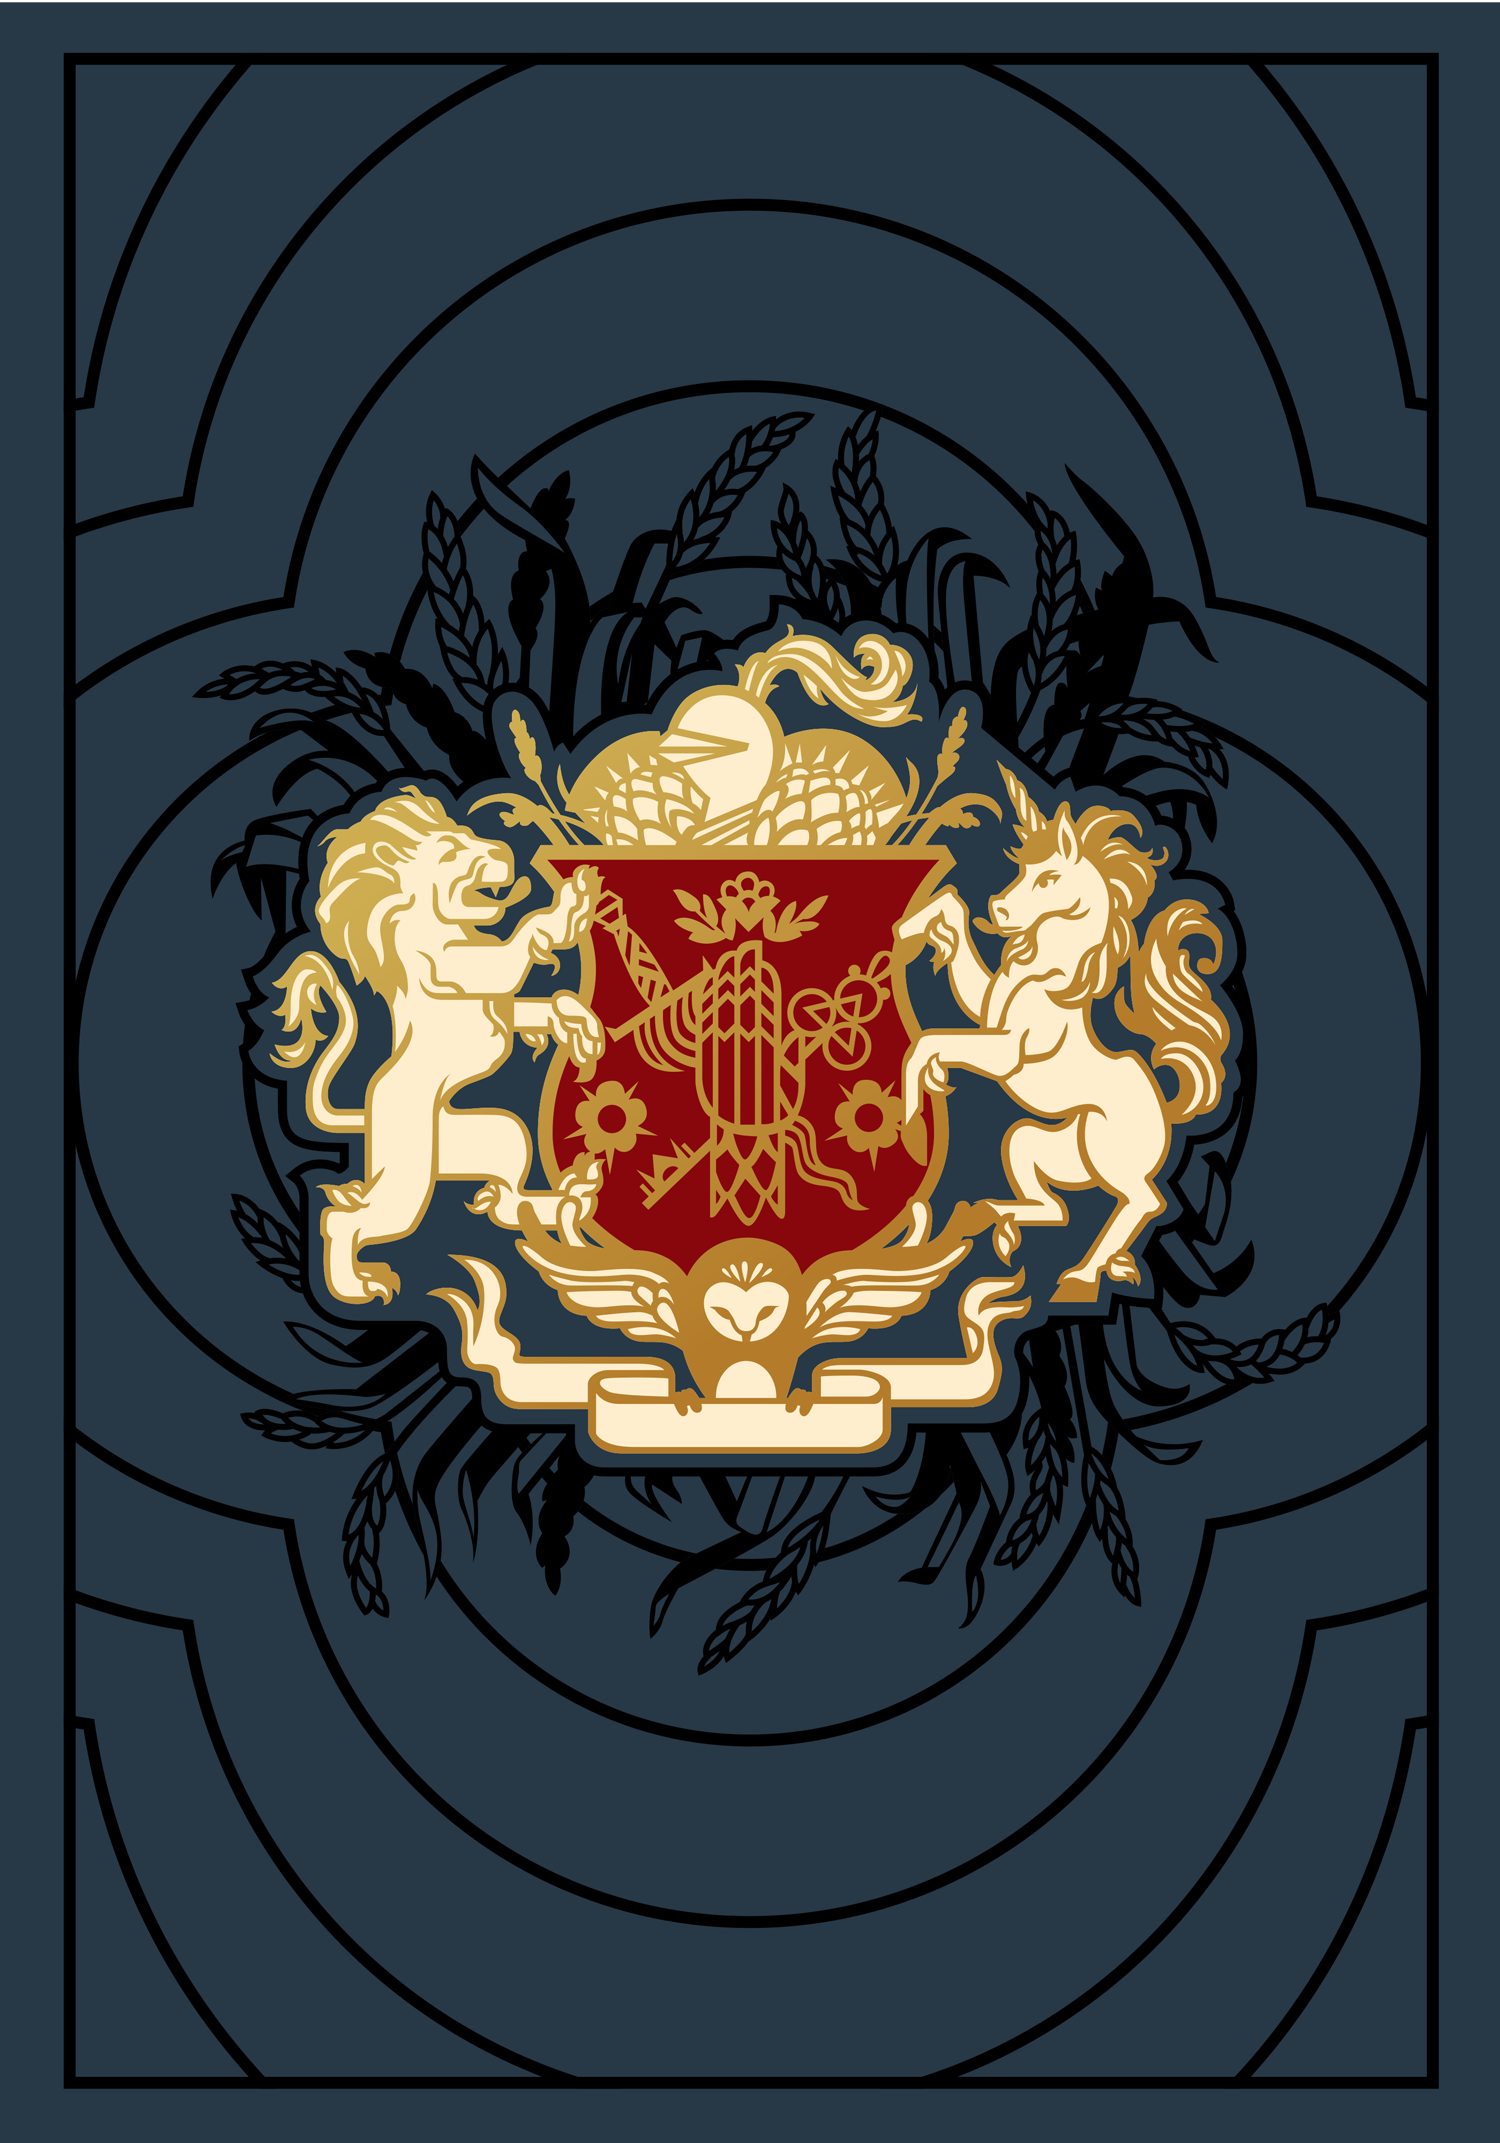 1001Knights_Fellowship_ForArtistApproval_A1_LowRes-1.png